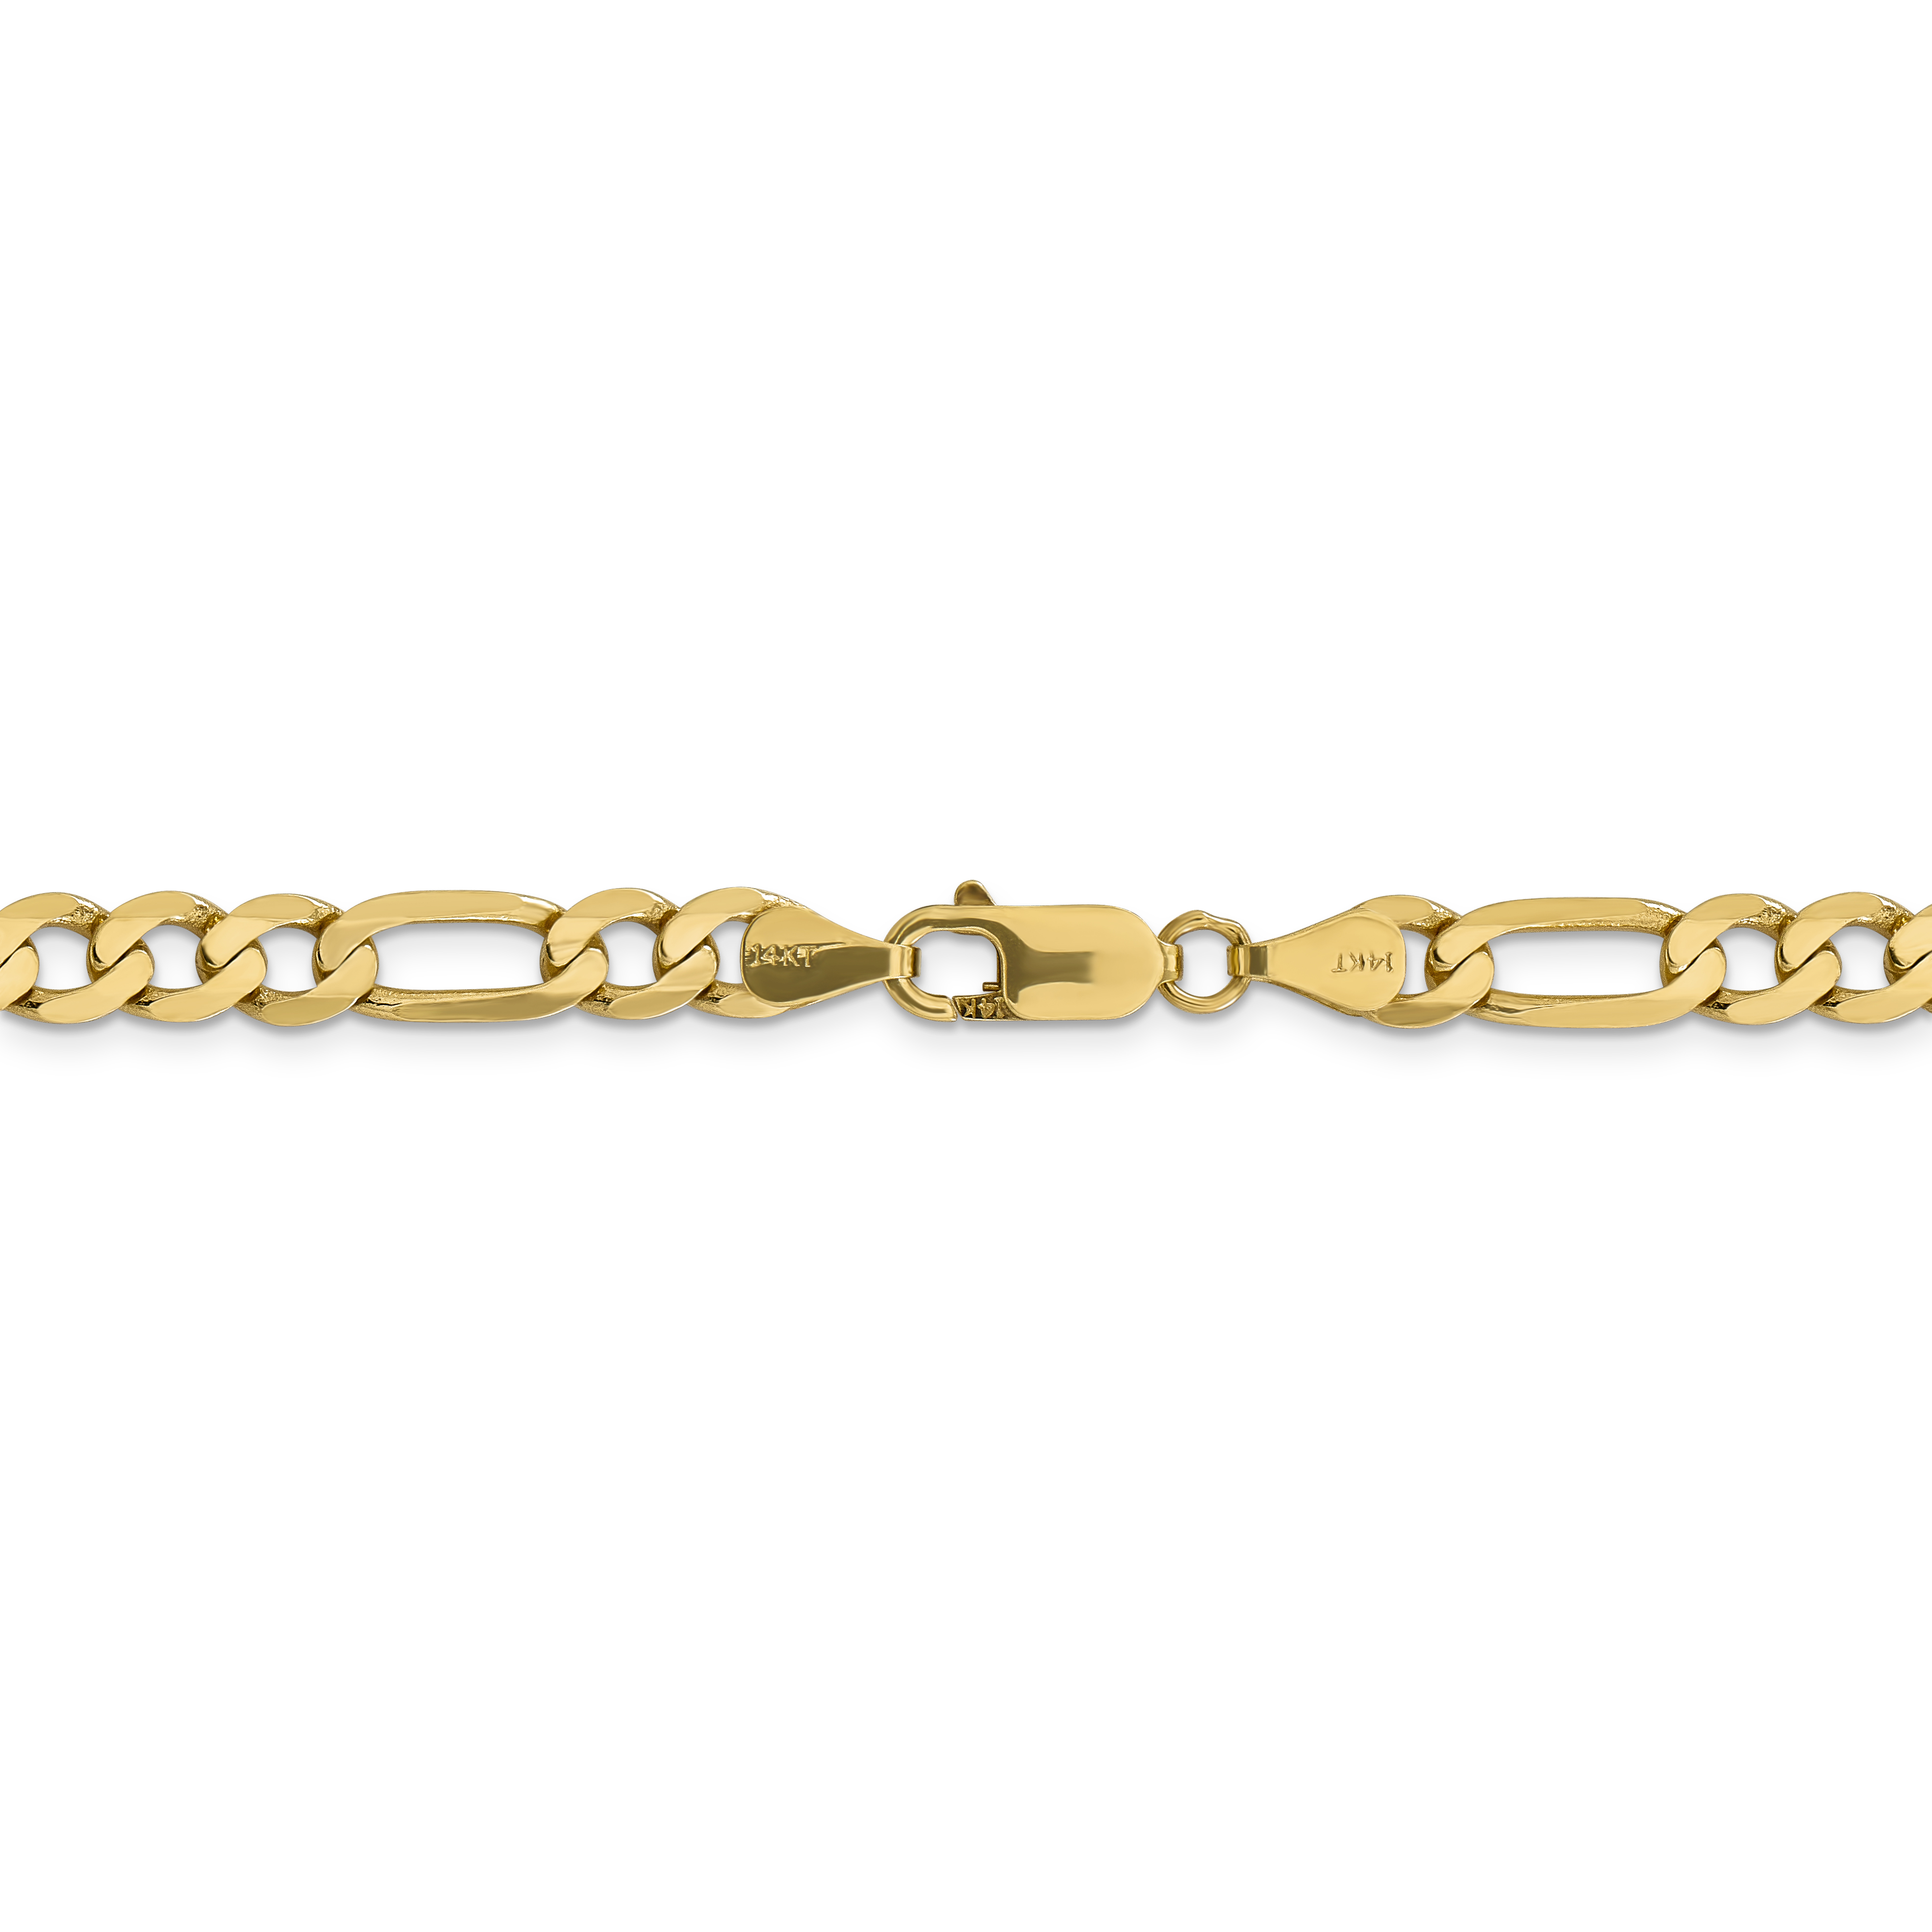 14k Yellow Gold 6.25mm Flat Link Figaro Chain Necklace 24 Inch Pendant Charm Fine Jewelry Gifts For Women For Her - image 3 de 5